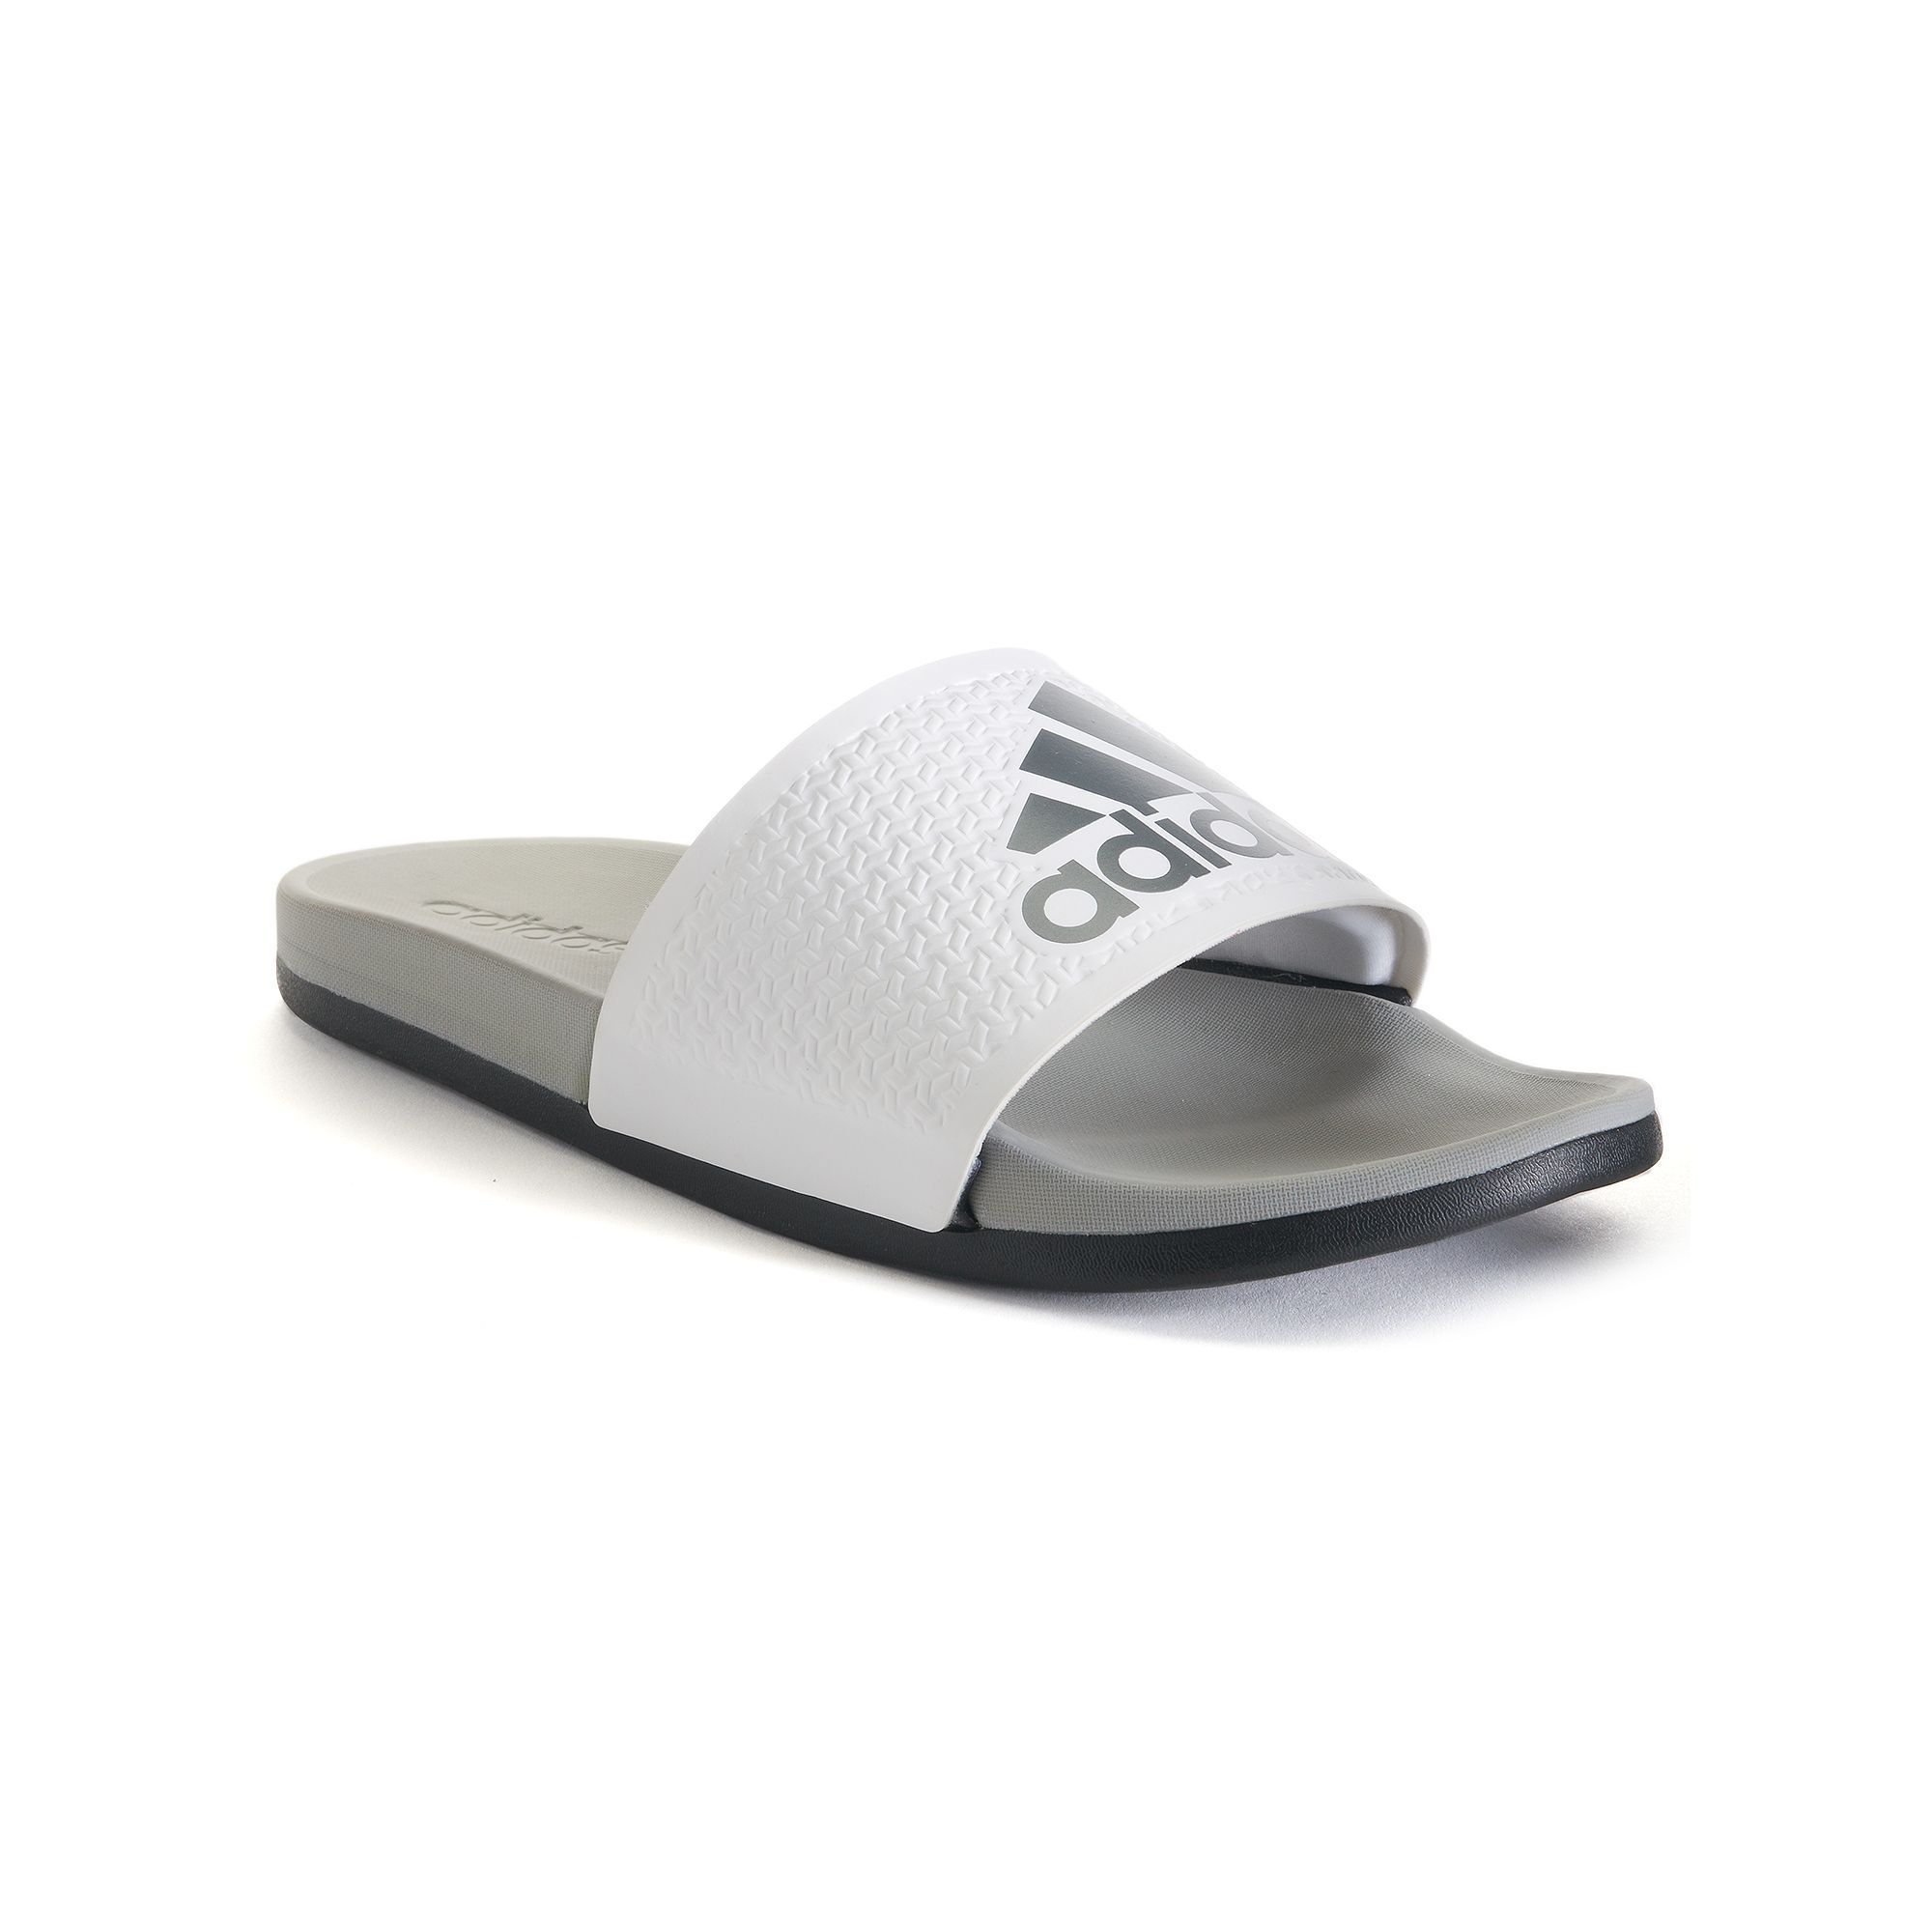 24b501644 adidas Adilette Supercloud Plus Men s Slide Sandals in 2019 ...